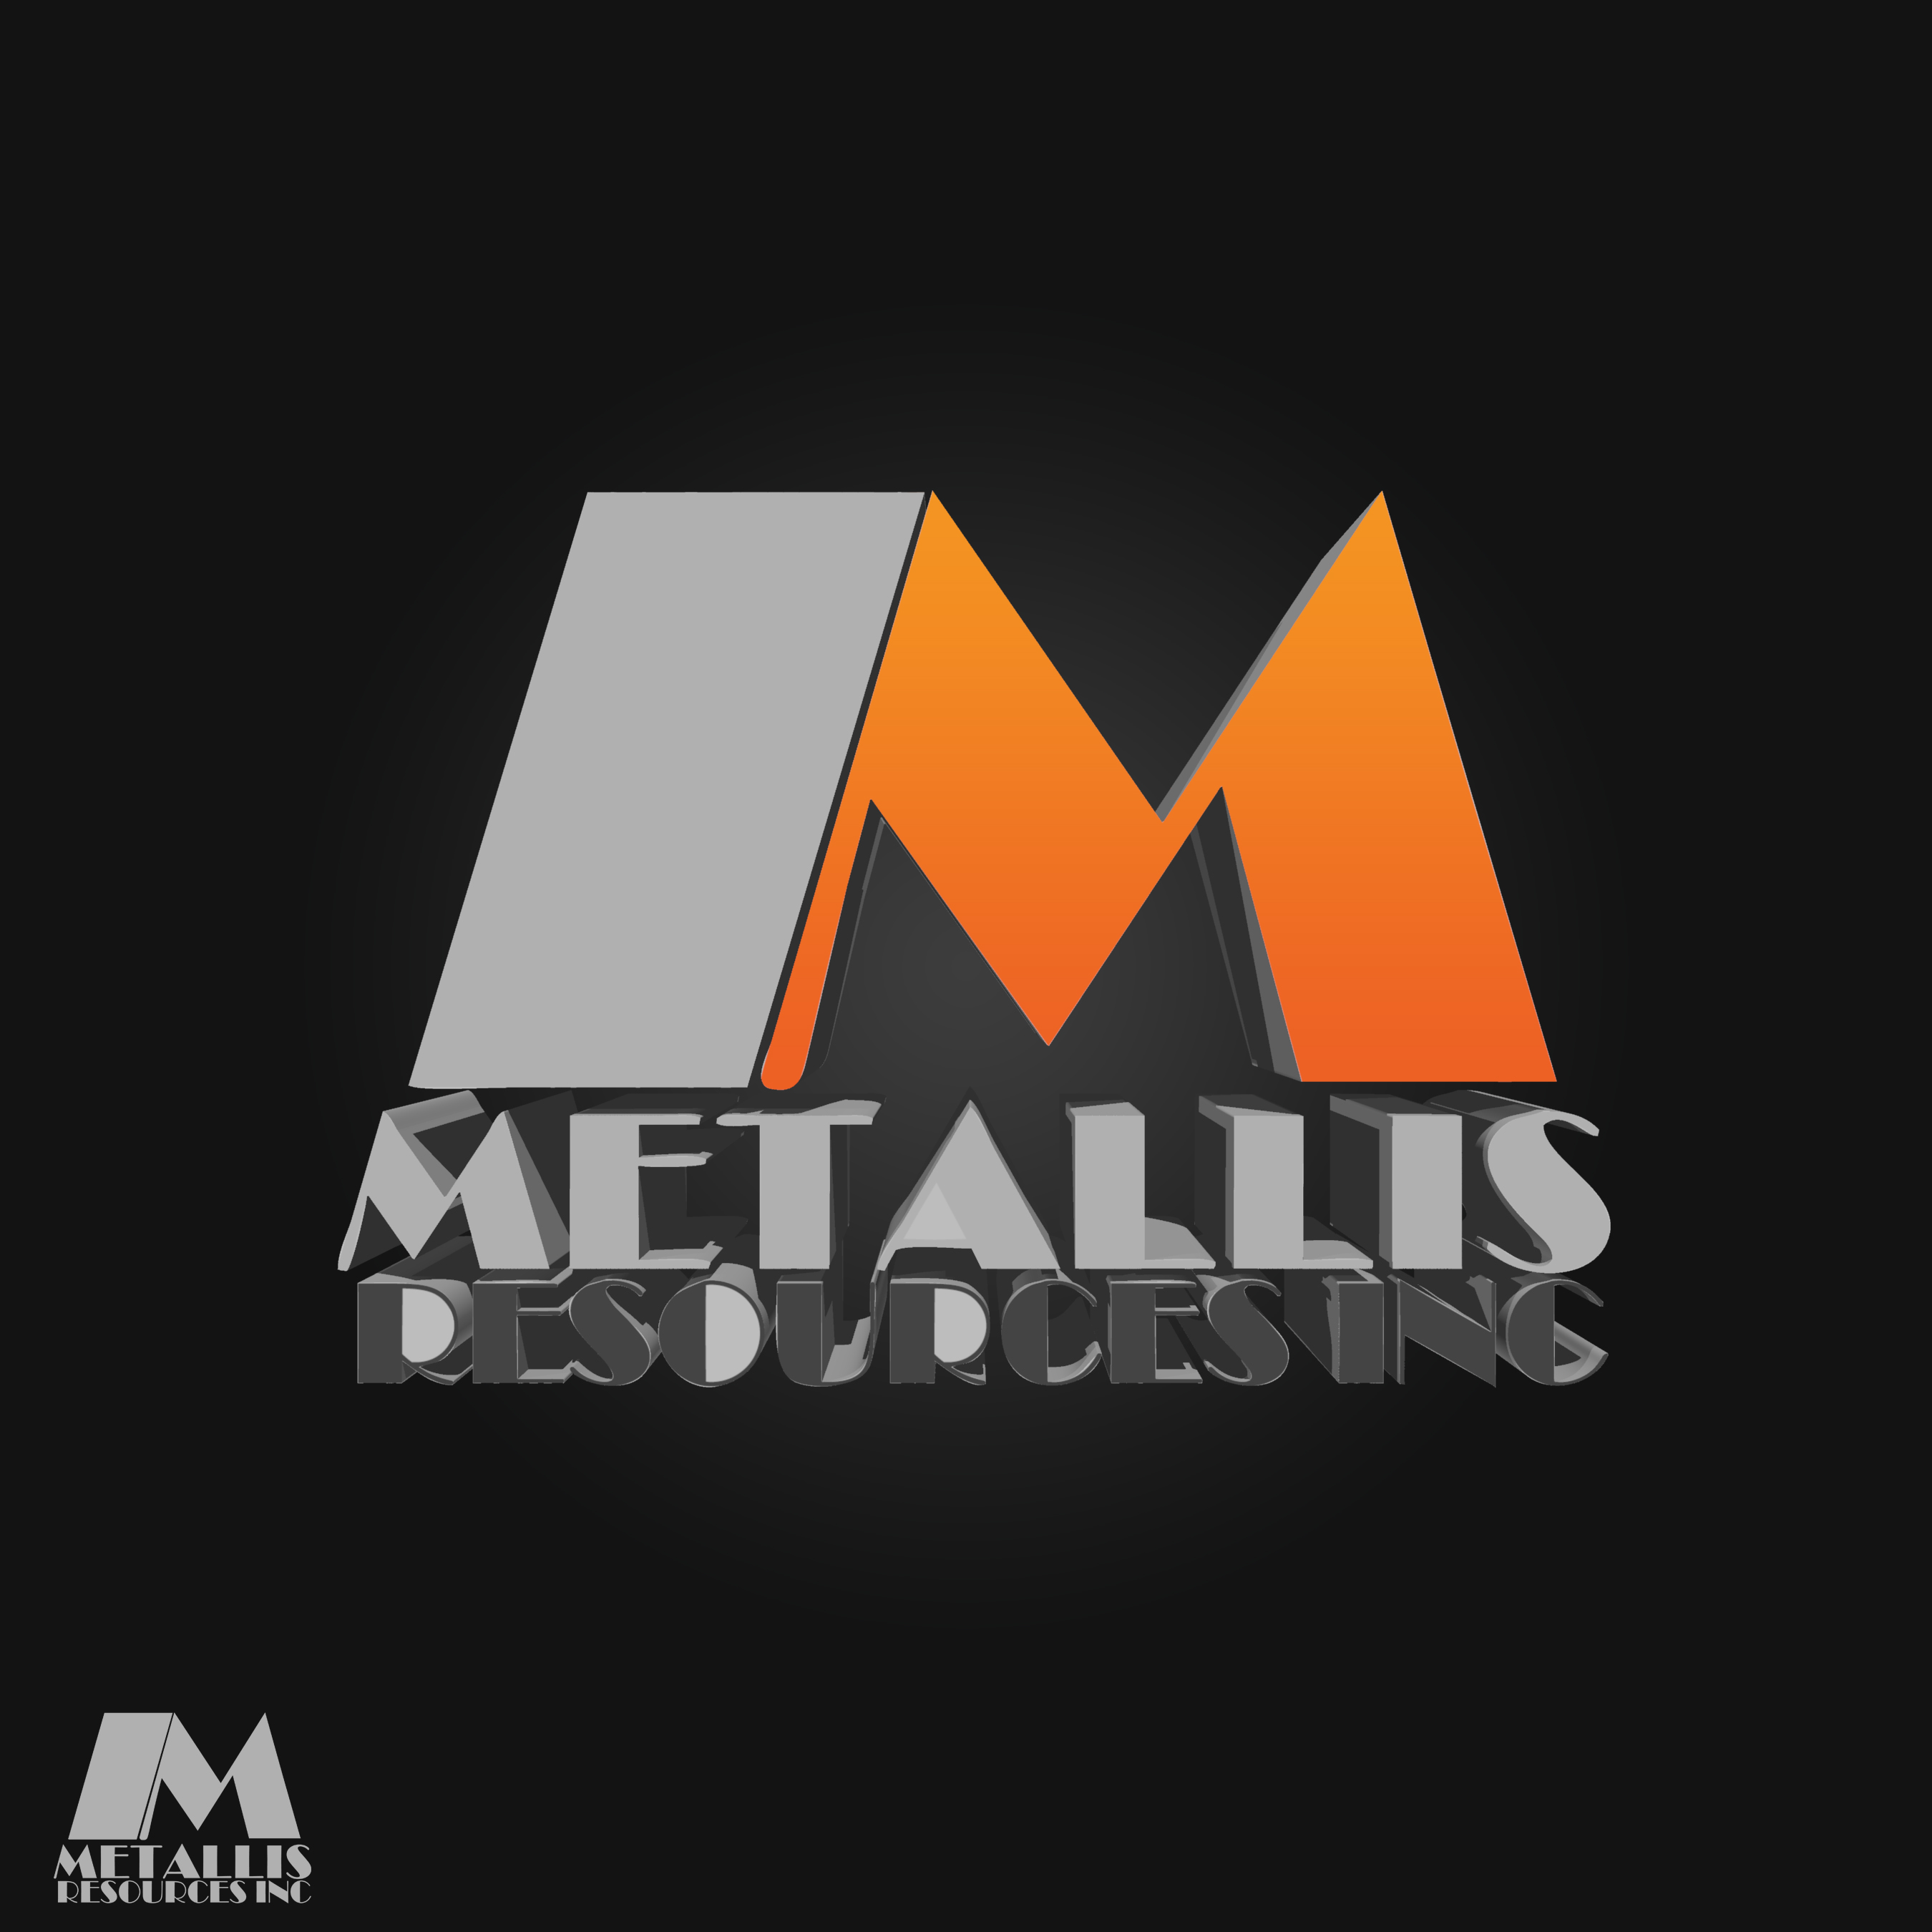 Logo Design by Karem Tounsi - Entry No. 135 in the Logo Design Contest Metallis Resources Inc Logo Design.